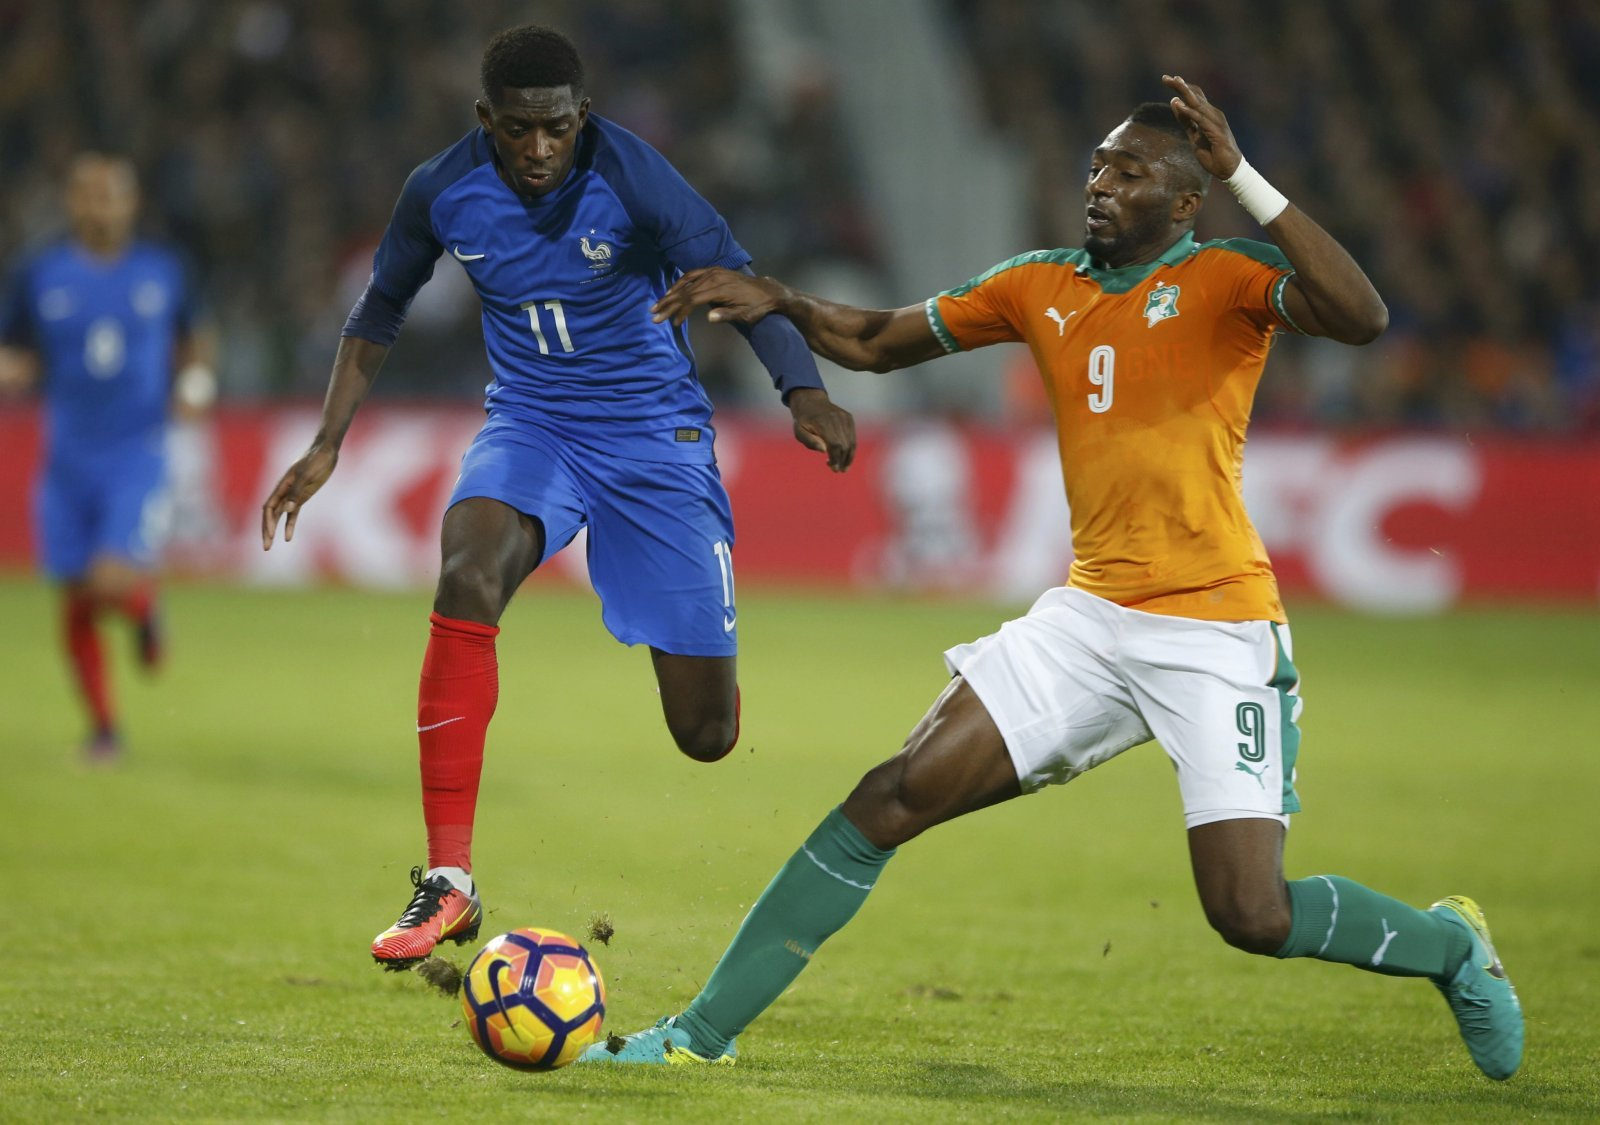 Wilfried Kanon should be someone Crystal Palace consider signing